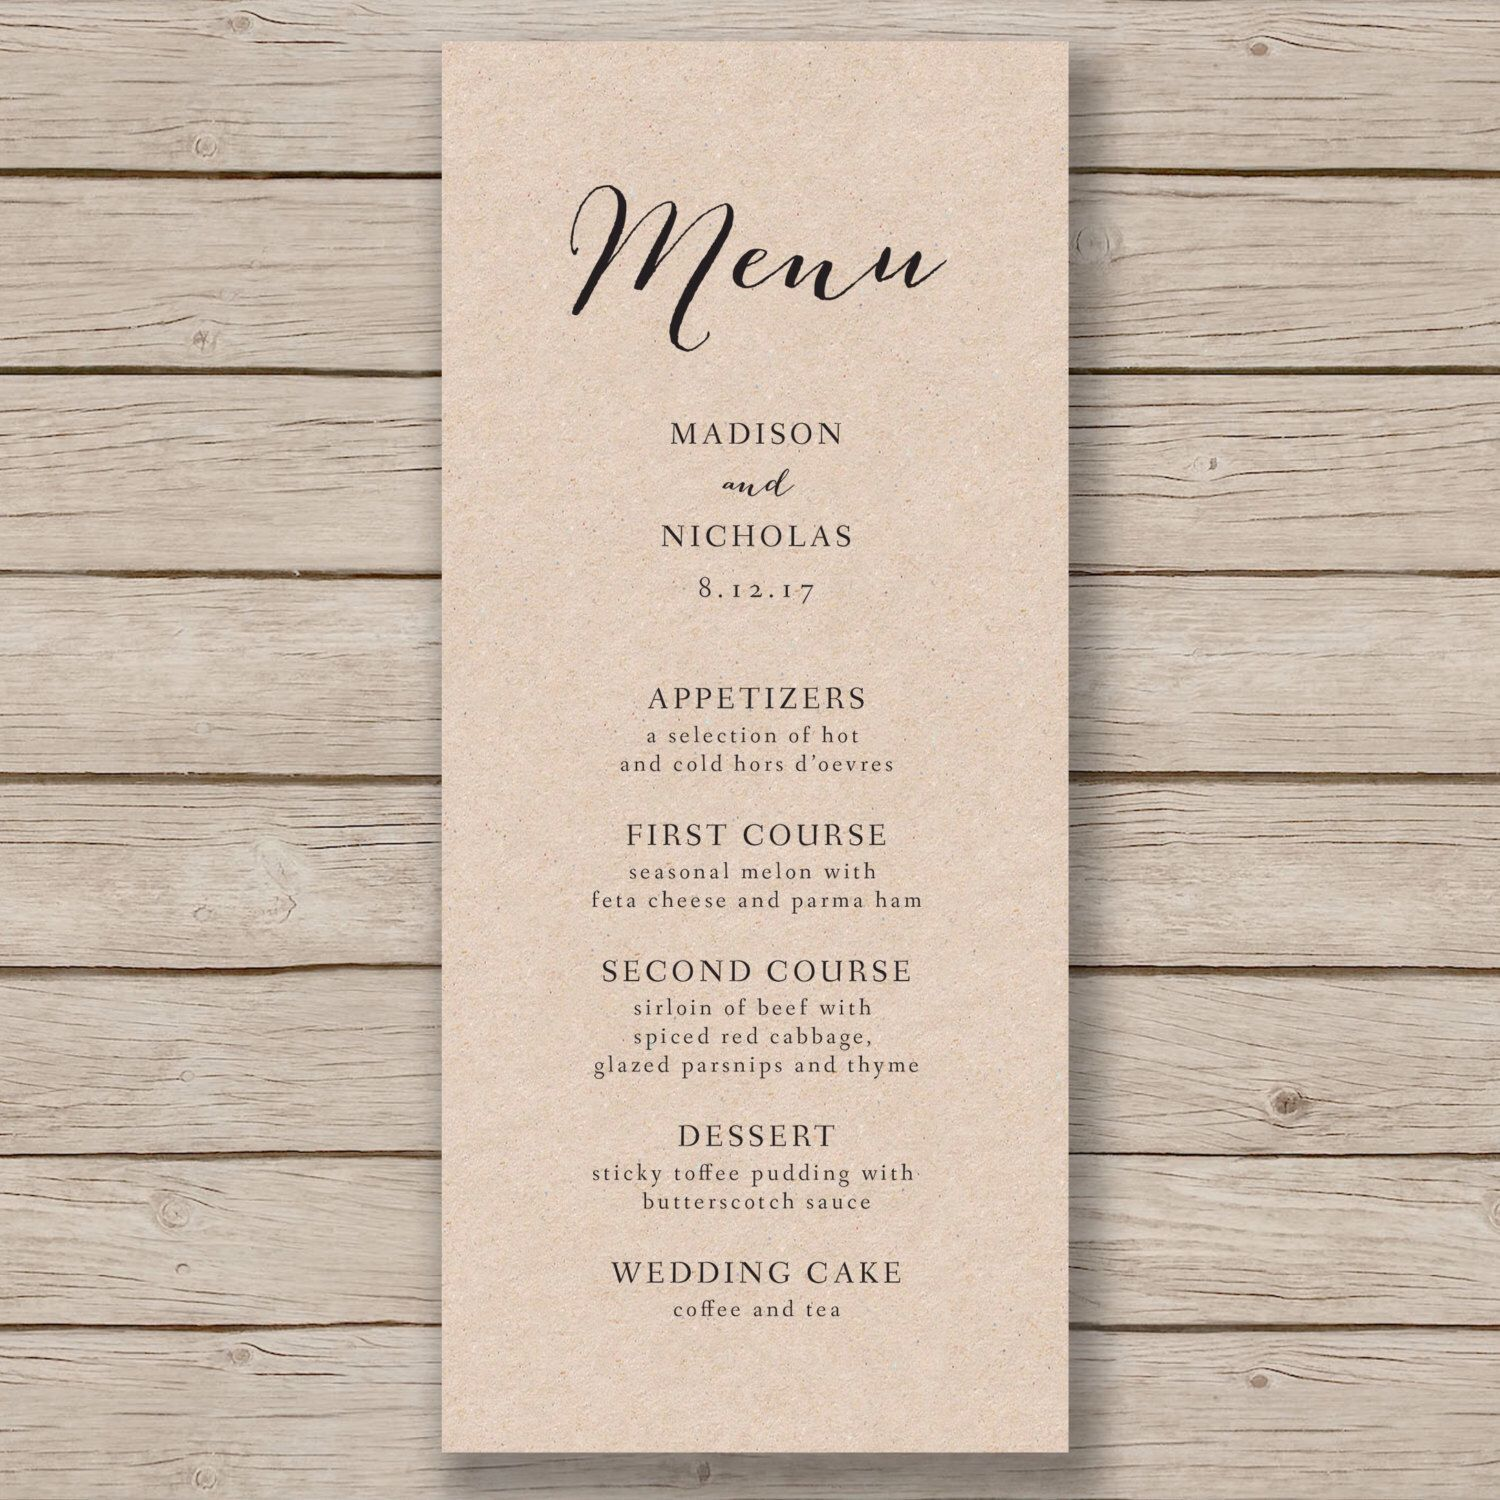 006 Archaicawful Free Wedding Menu Template Concept  Templates Printable For MacFull